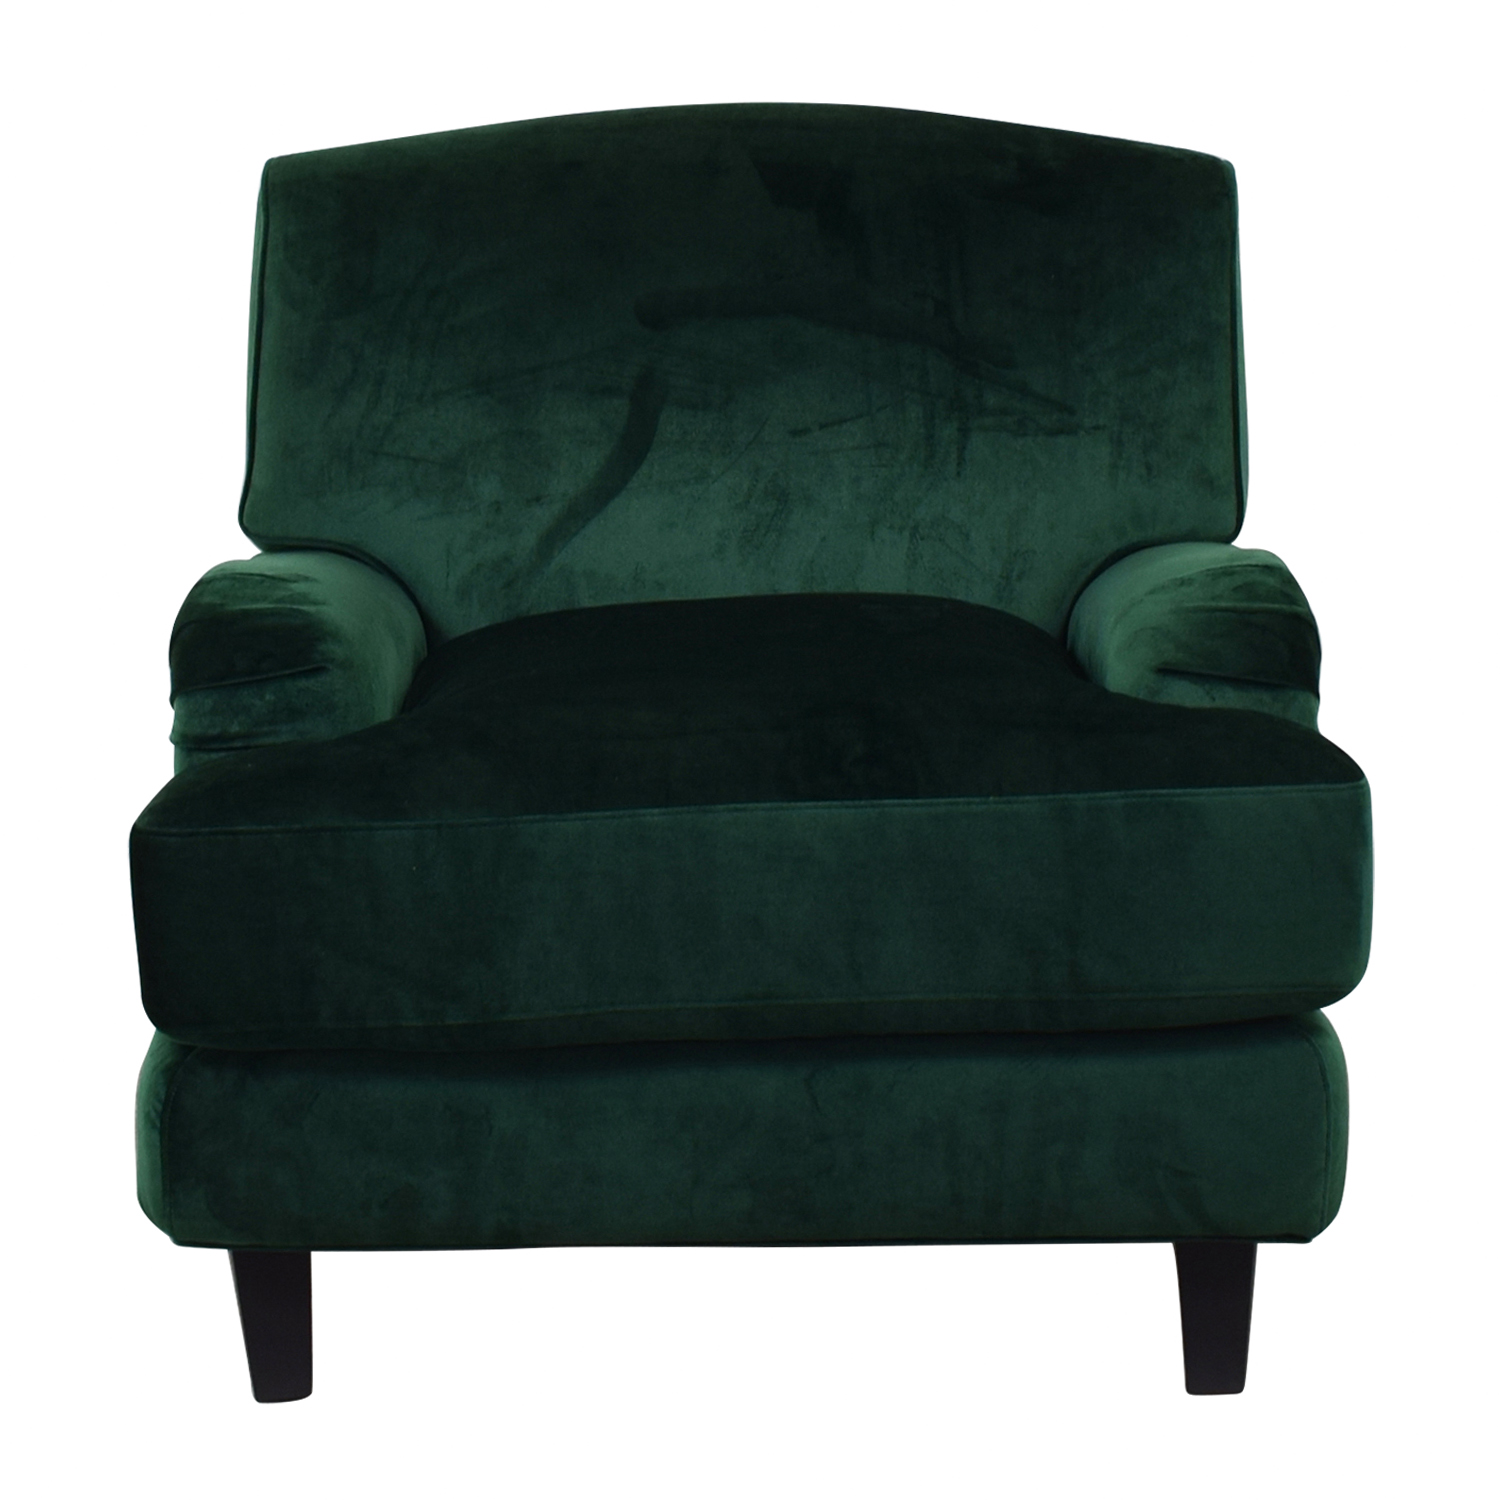 Emerald Green Accent Chair 76 Off Rose Emerald Green Chair Chairs